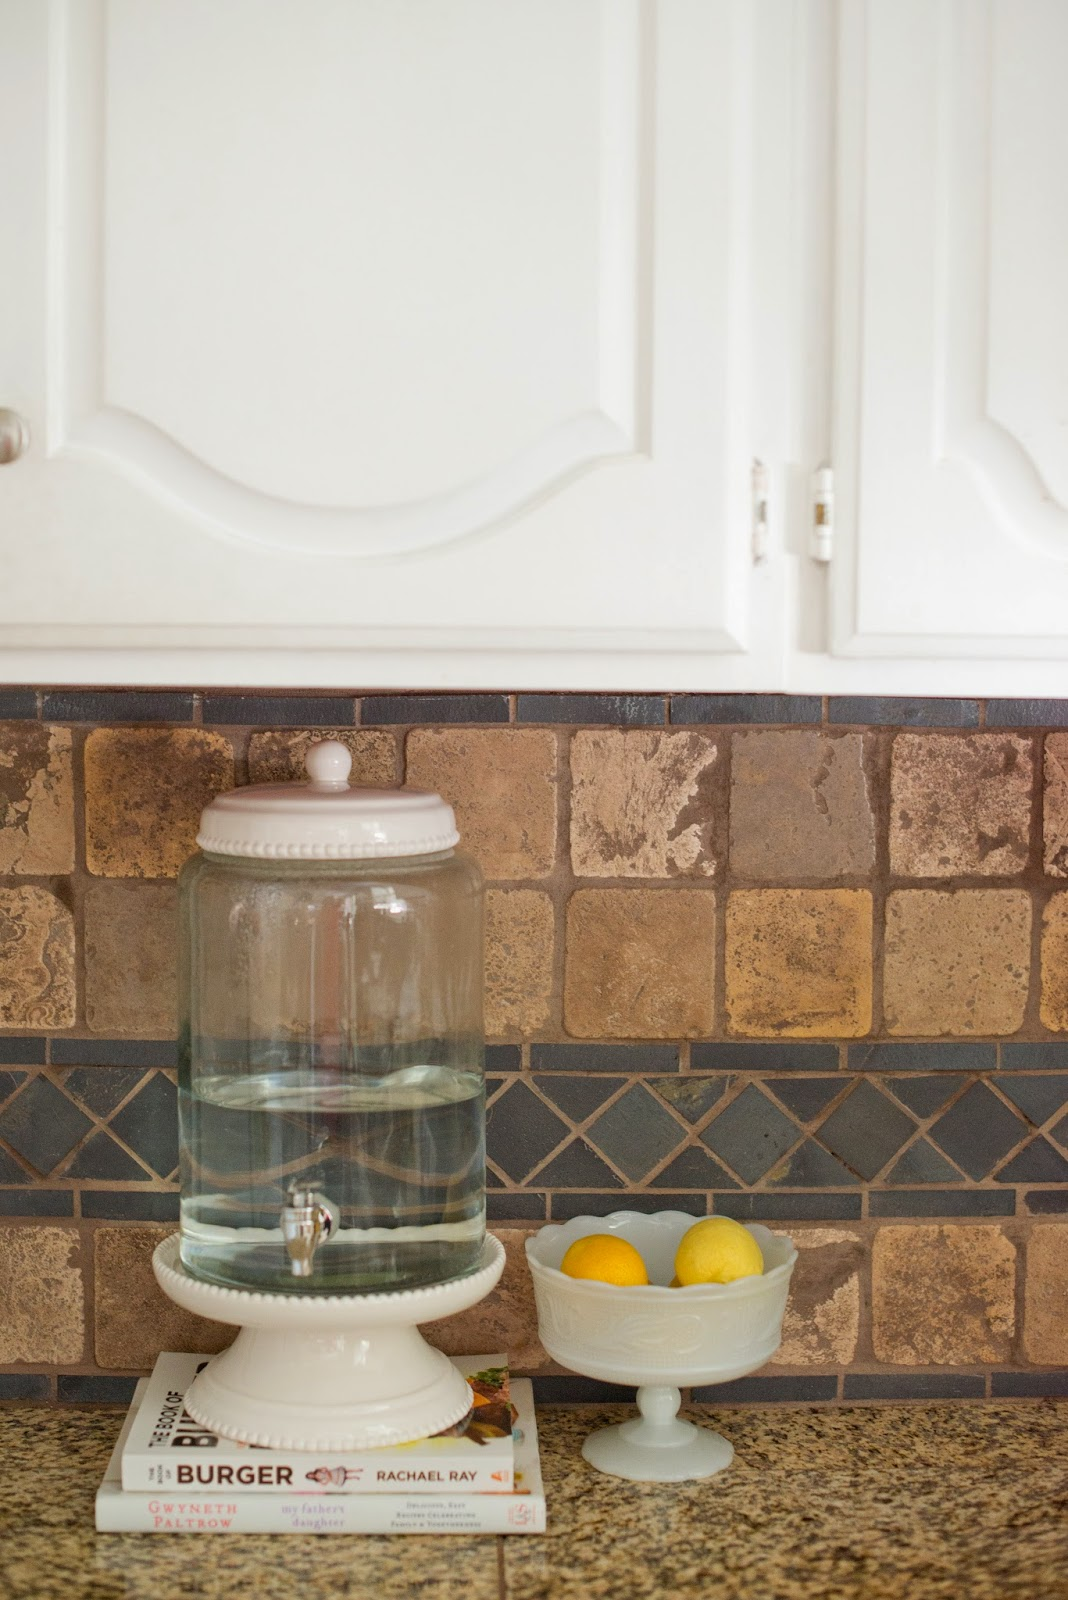 I Took My Own Advice And Decided To Style The Space Like I Did My Kitchen  Sink. I Have Lemons On Hand If I Want To Add A Little Flavor To My Water.